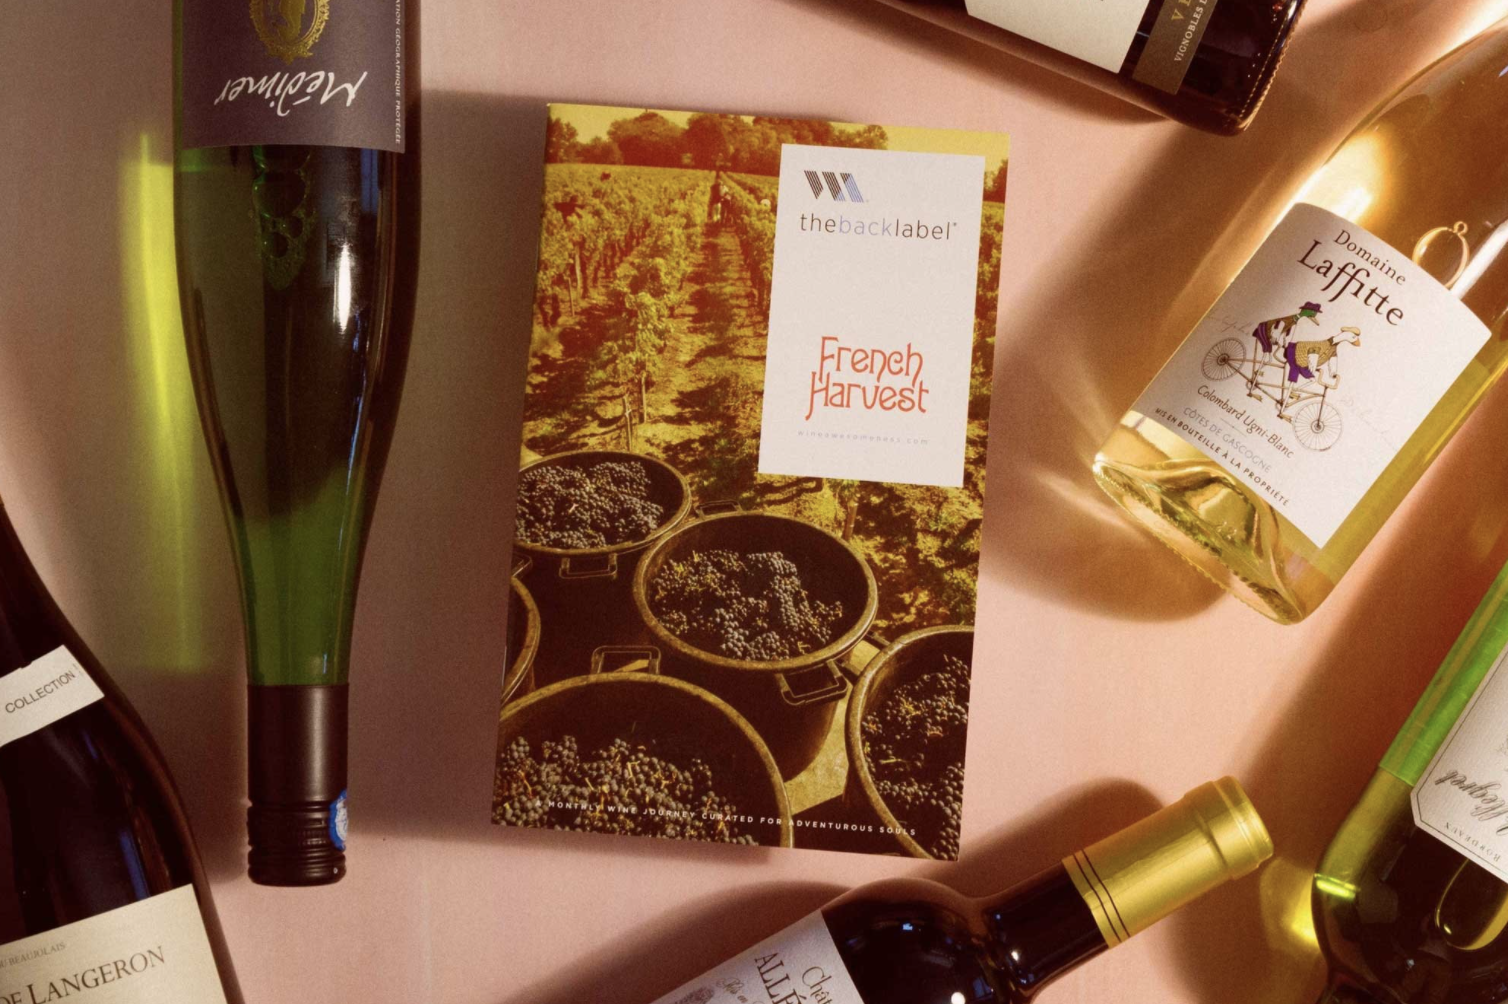 A top down of a booklet called French Harvest surrounded by bottles of wine